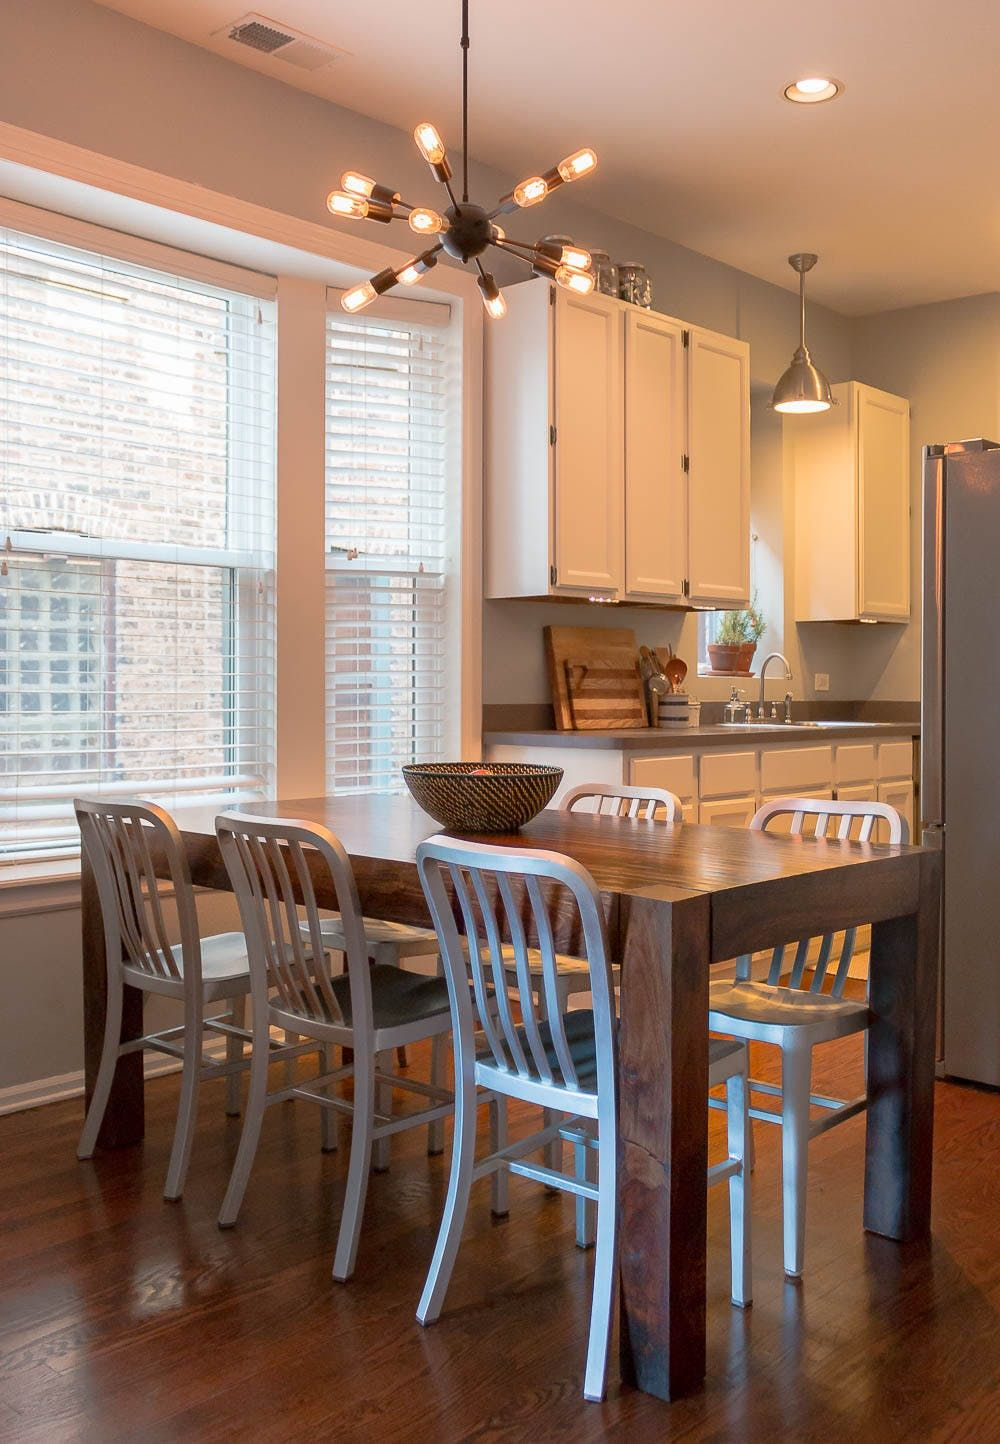 Tour a Bright, Eclectic Chicago Condo | Dining area, Spaces and Condos